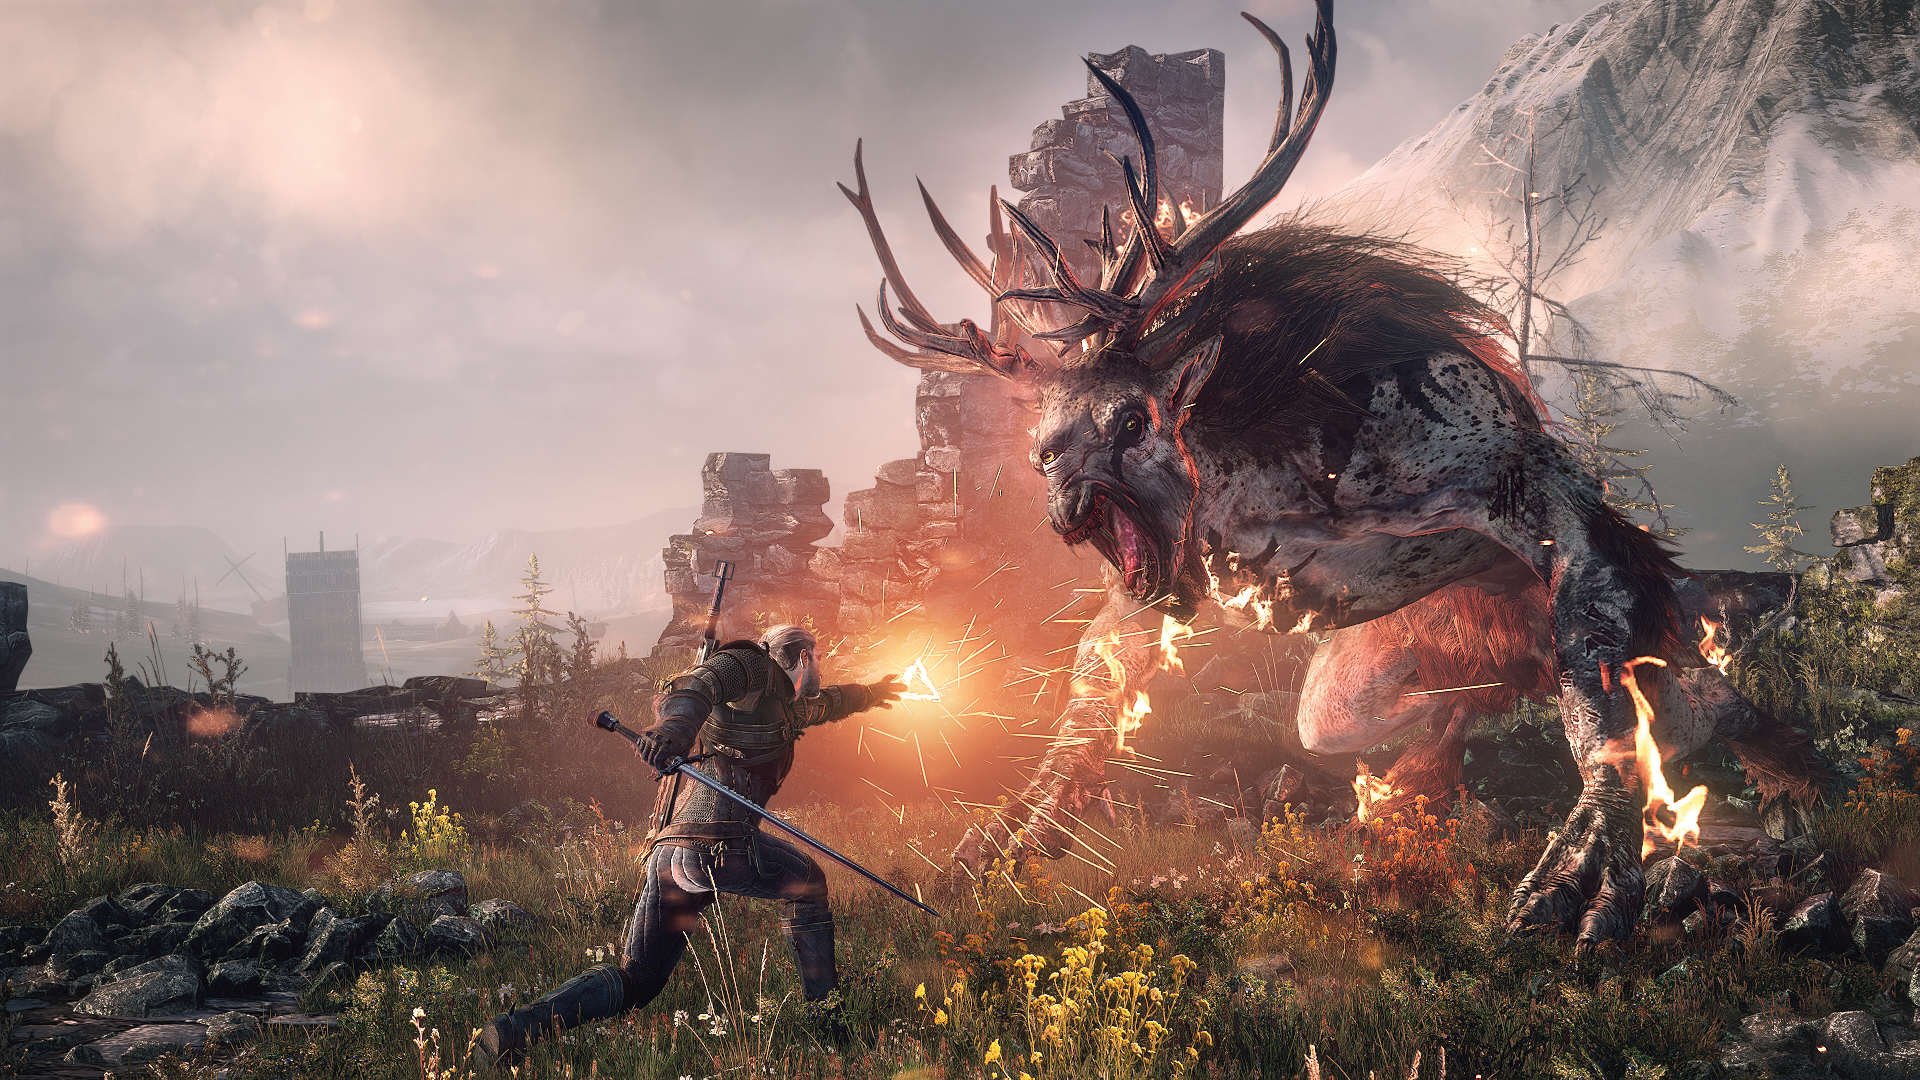 2457637 the witcher 3 wild hunt geralt vs fiend Heres All The Winners And Losers From The GDC Awards 2016